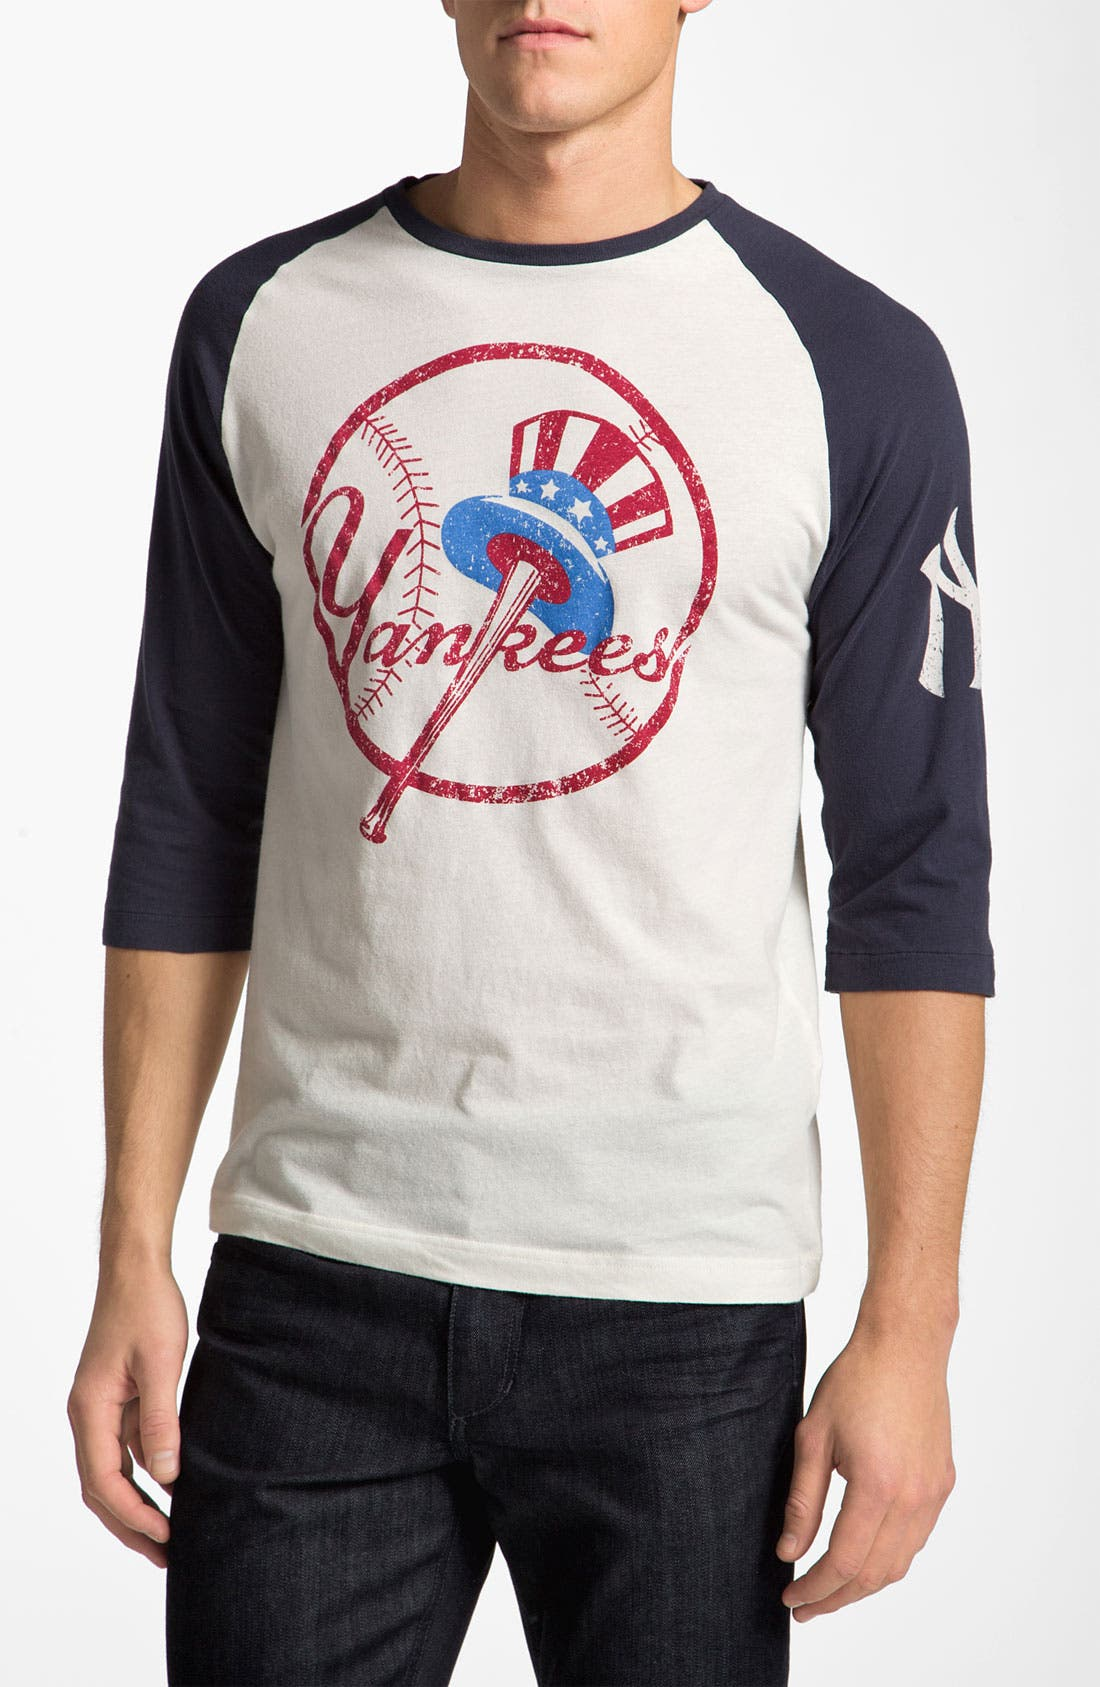 Alternate Image 1 Selected - Wright & Ditson 'New York Yankees' Baseball T-Shirt